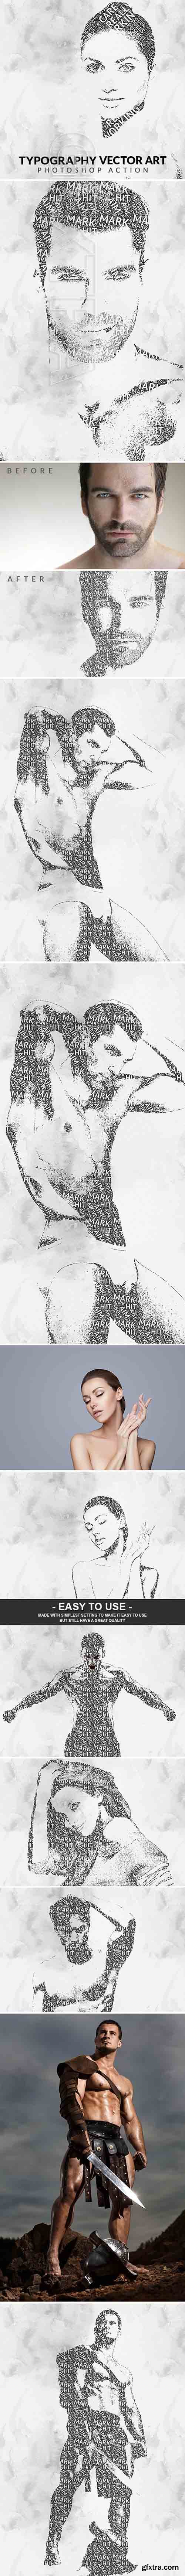 GraphicRiver - Typography Vector Art Photoshop Action 20932469